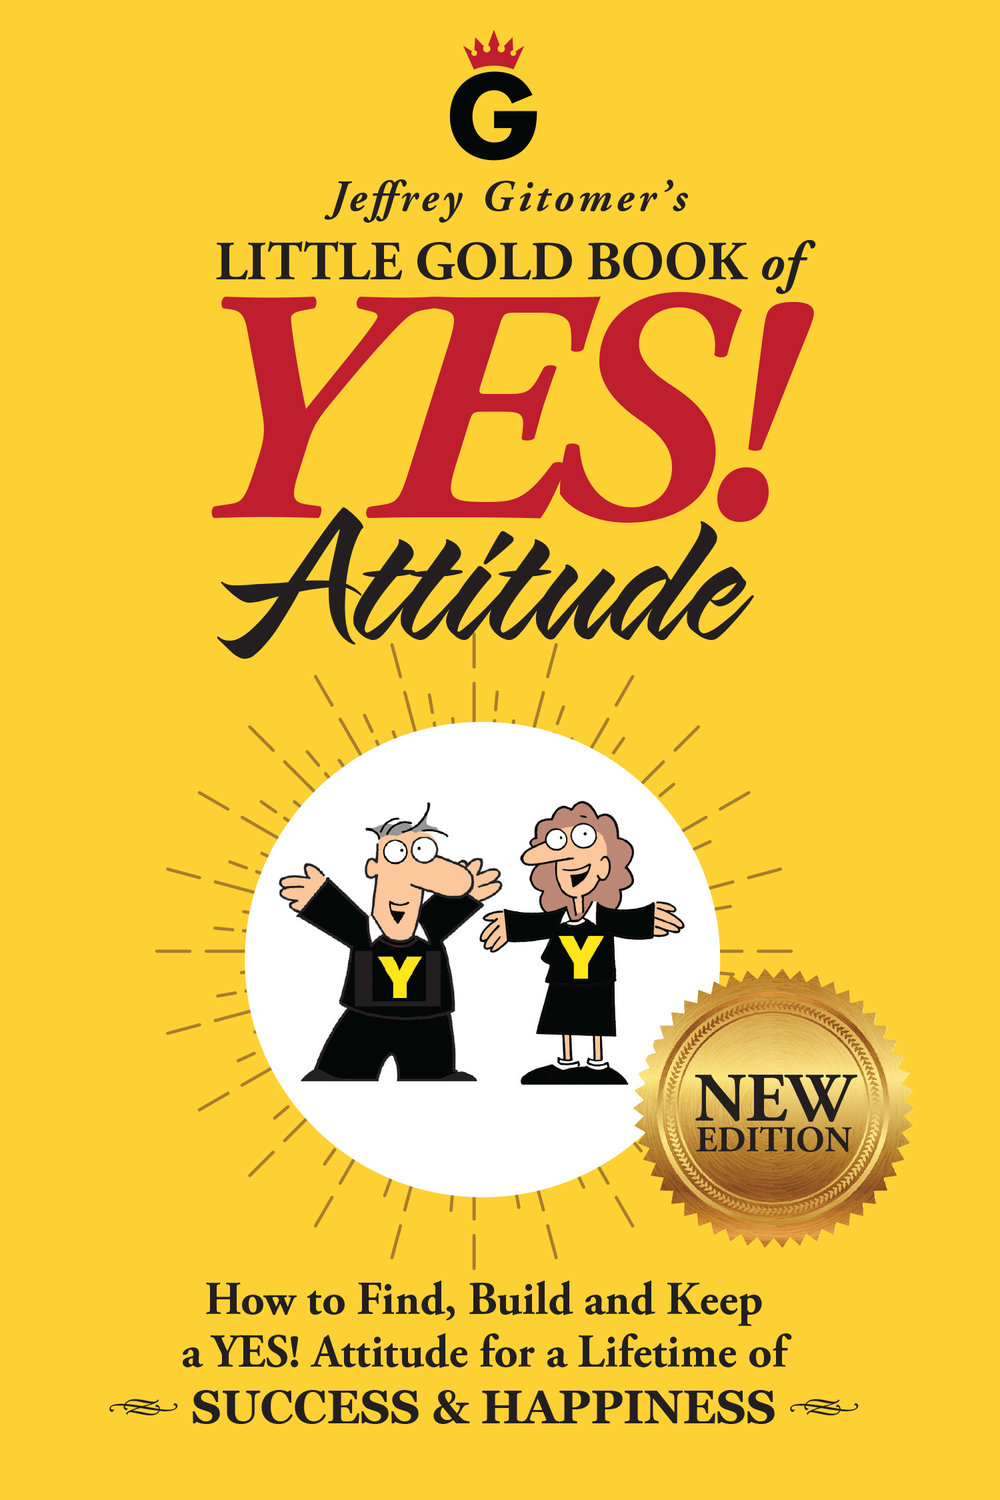 Jeffrey Gitomer's Little Gold Book of YES! Attitude - By jeffrey gitomer